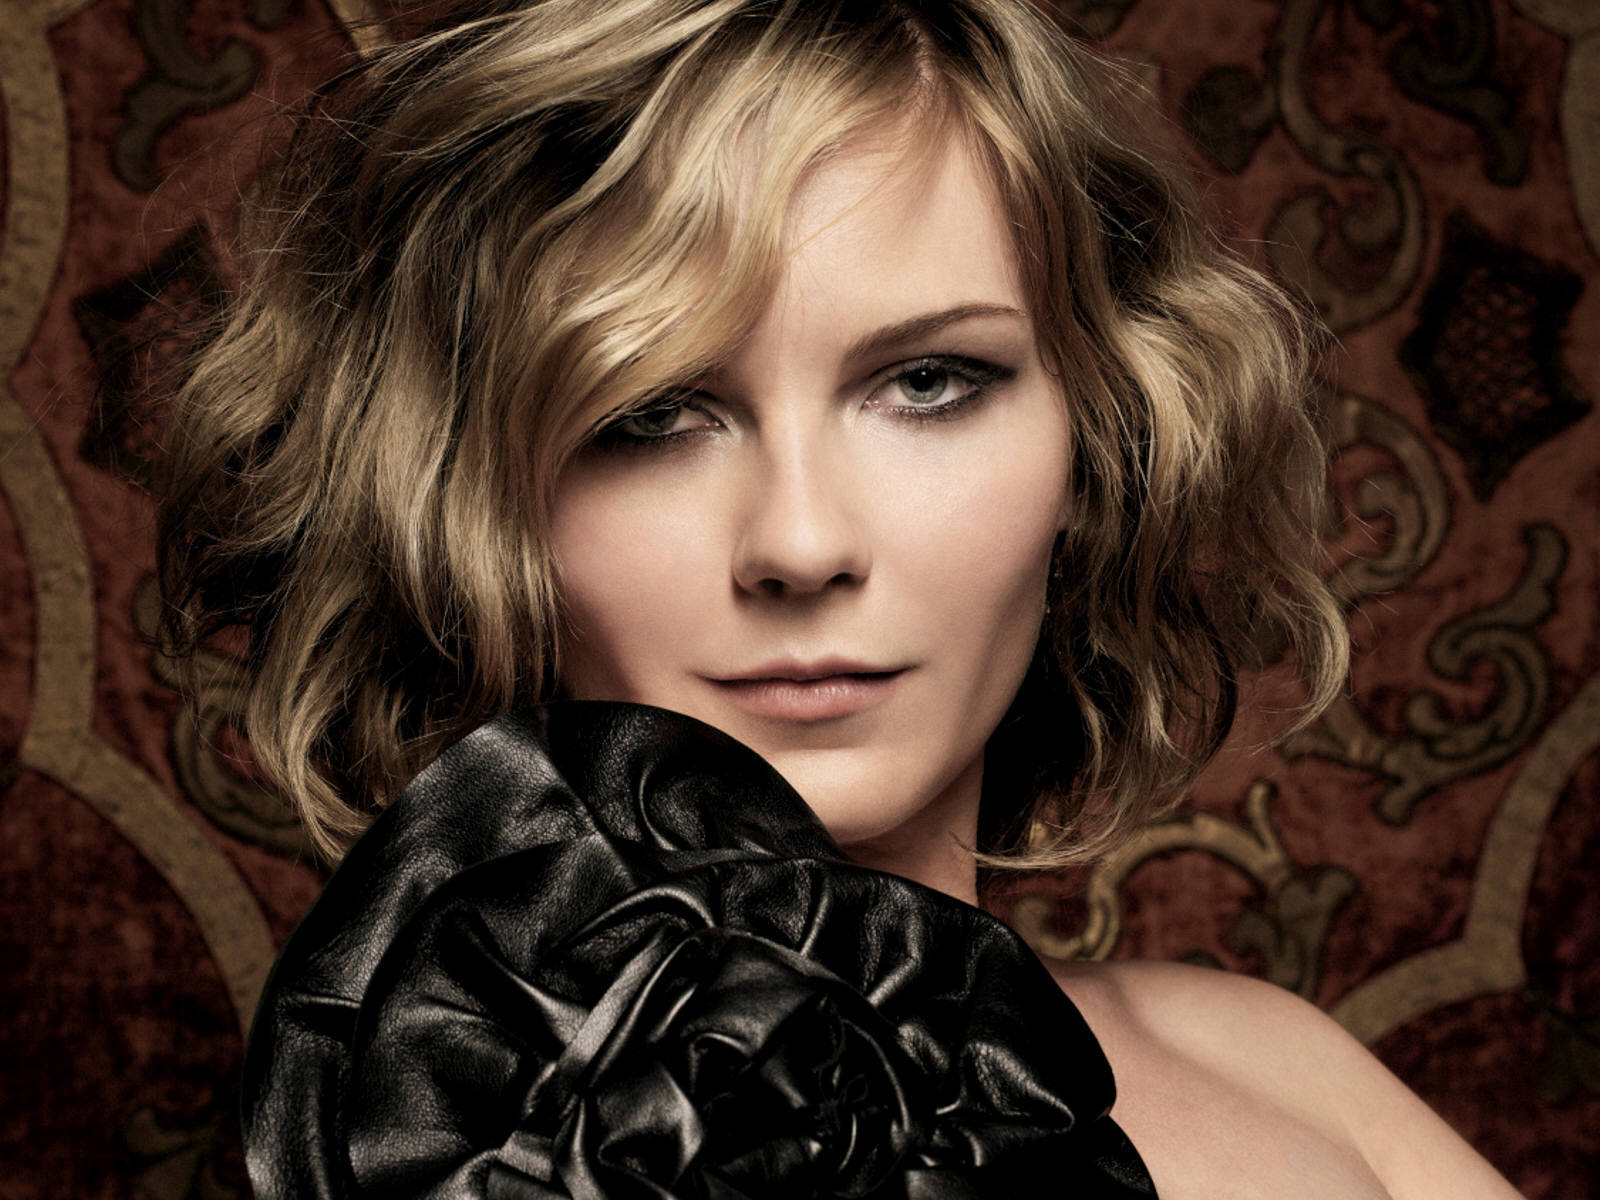 woman Actress Kirsten Dunst HD Wallpaper